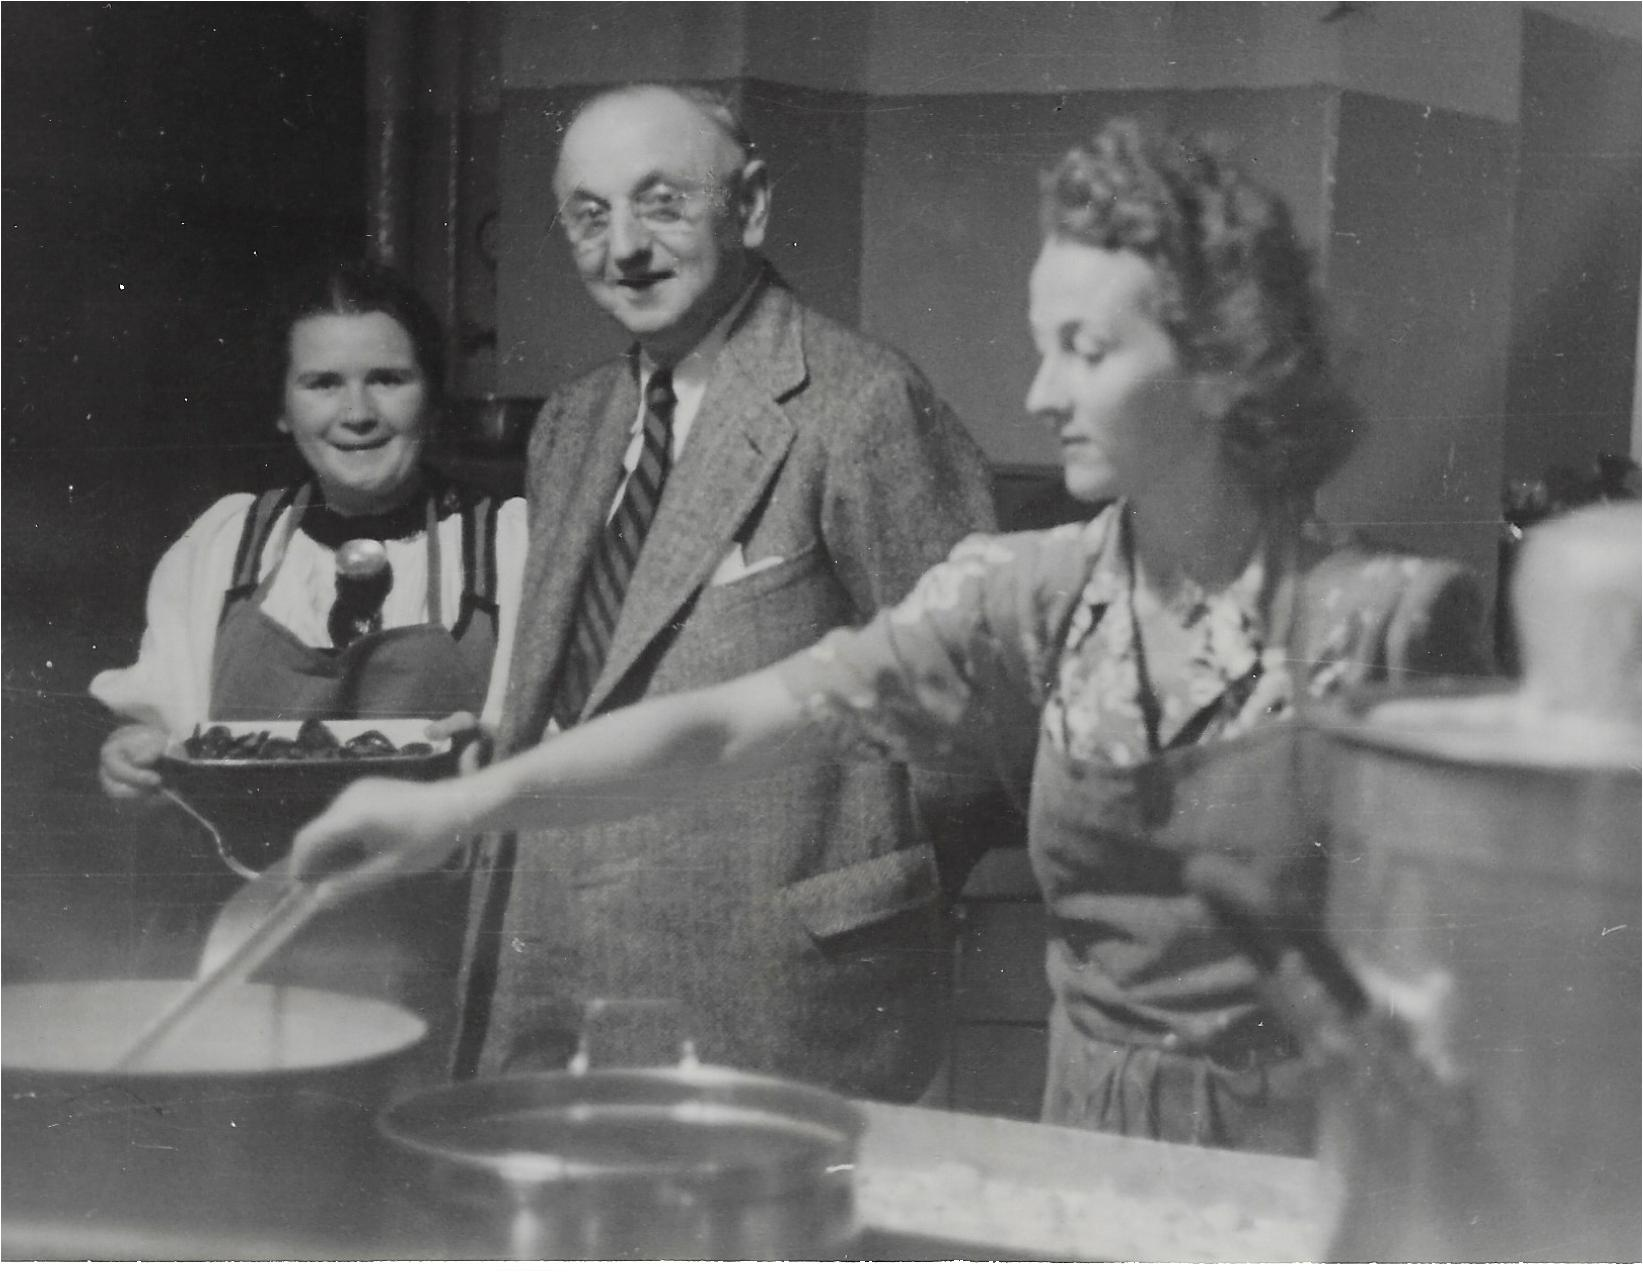 Trudi in the Caux kitchen with Frank Buchman 1946